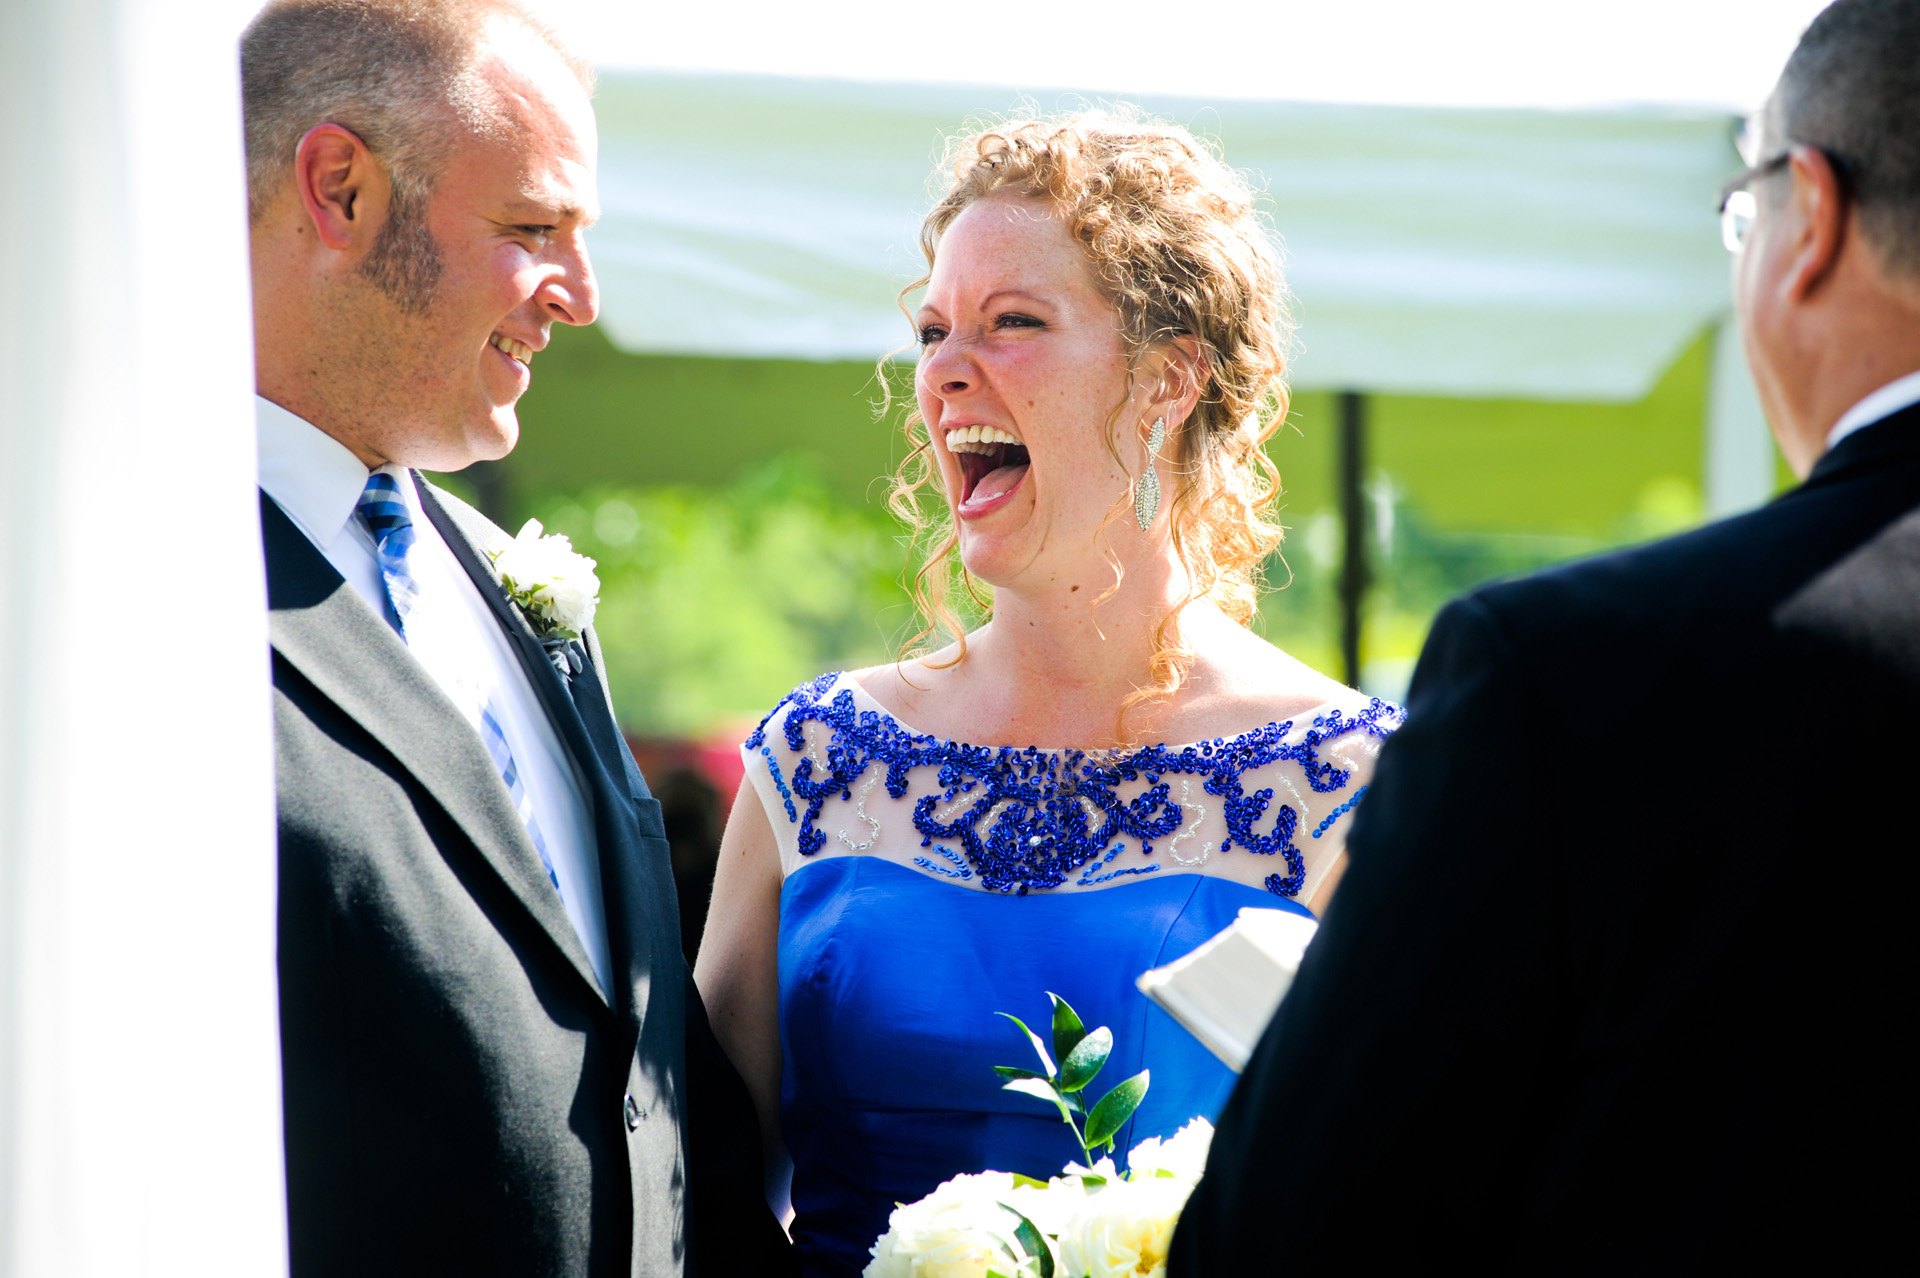 budget conscience brides featuring contemporary and Pinterest worthy wedding photographs in Michigan highlights moving away from Pinterest to creating your unique wedding photography showing the bride and groom sharing a laugh and a moment during their Michigan wedding that emphasized photojournalist's moments and kept the bride on her budget.